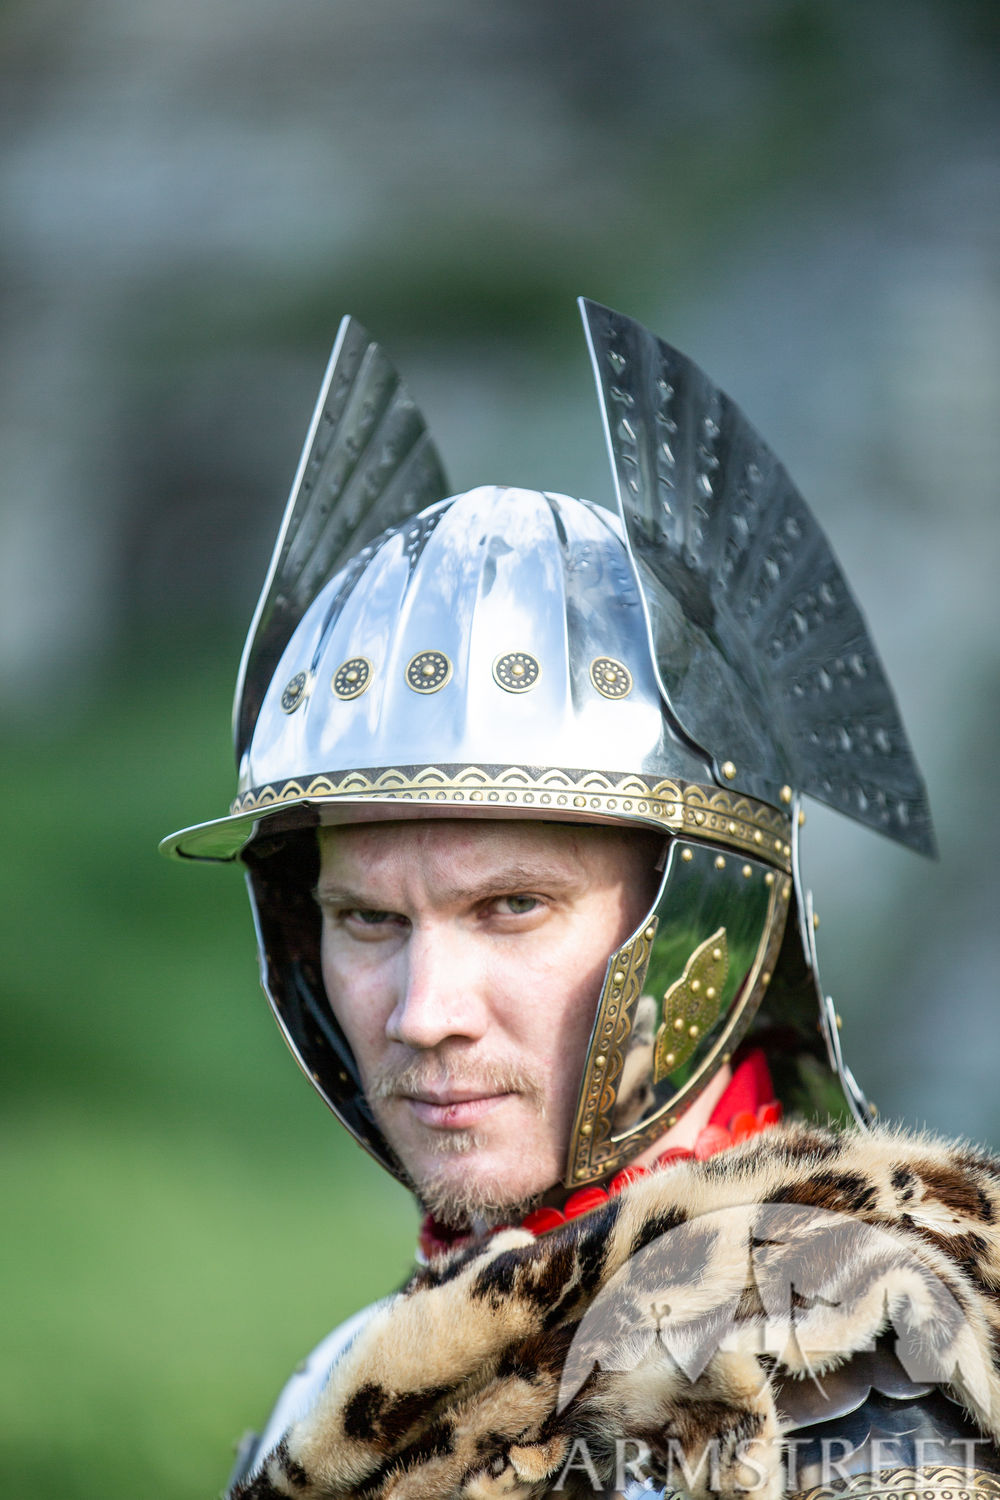 Polish Hussar helmet of stainless steel and brass